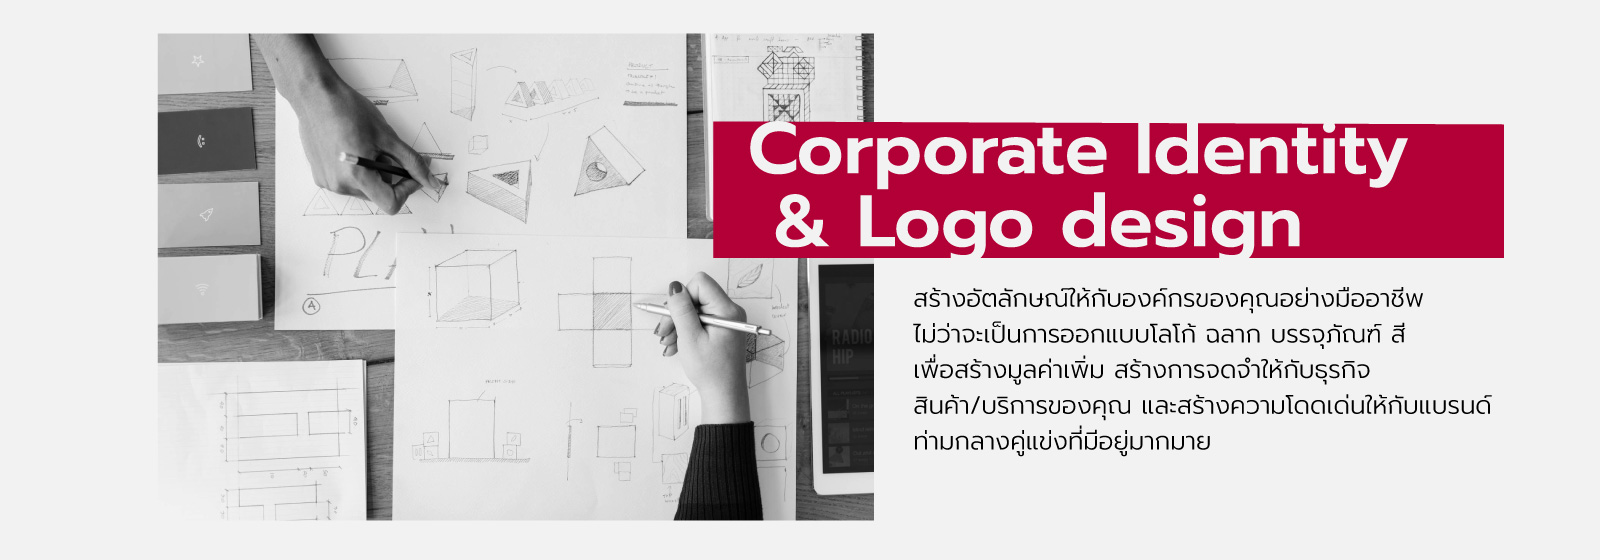 Corporate Identity & Logo Design